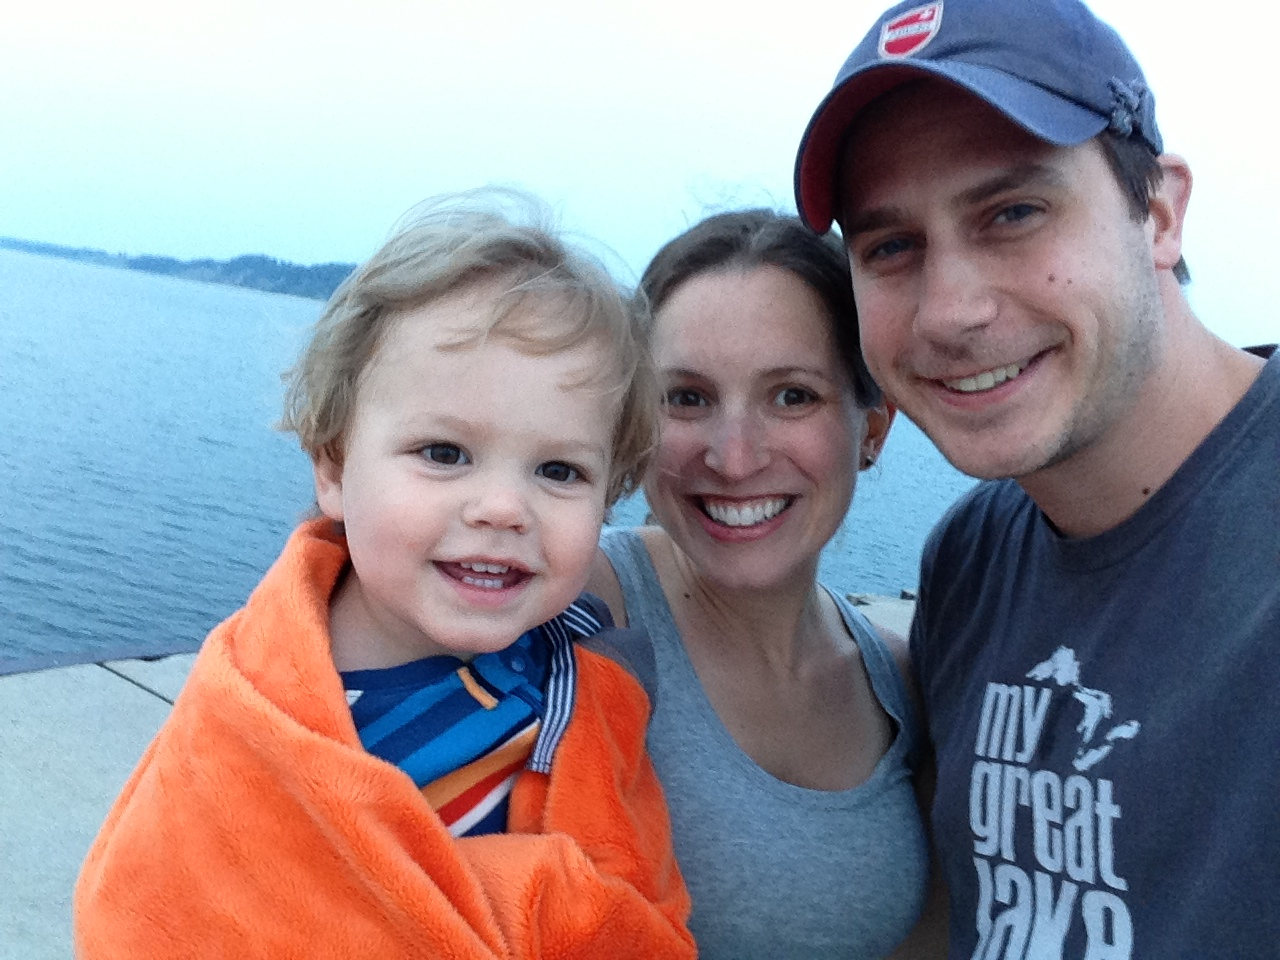 our little fam on an impromptu walk down the state park pier tonight.